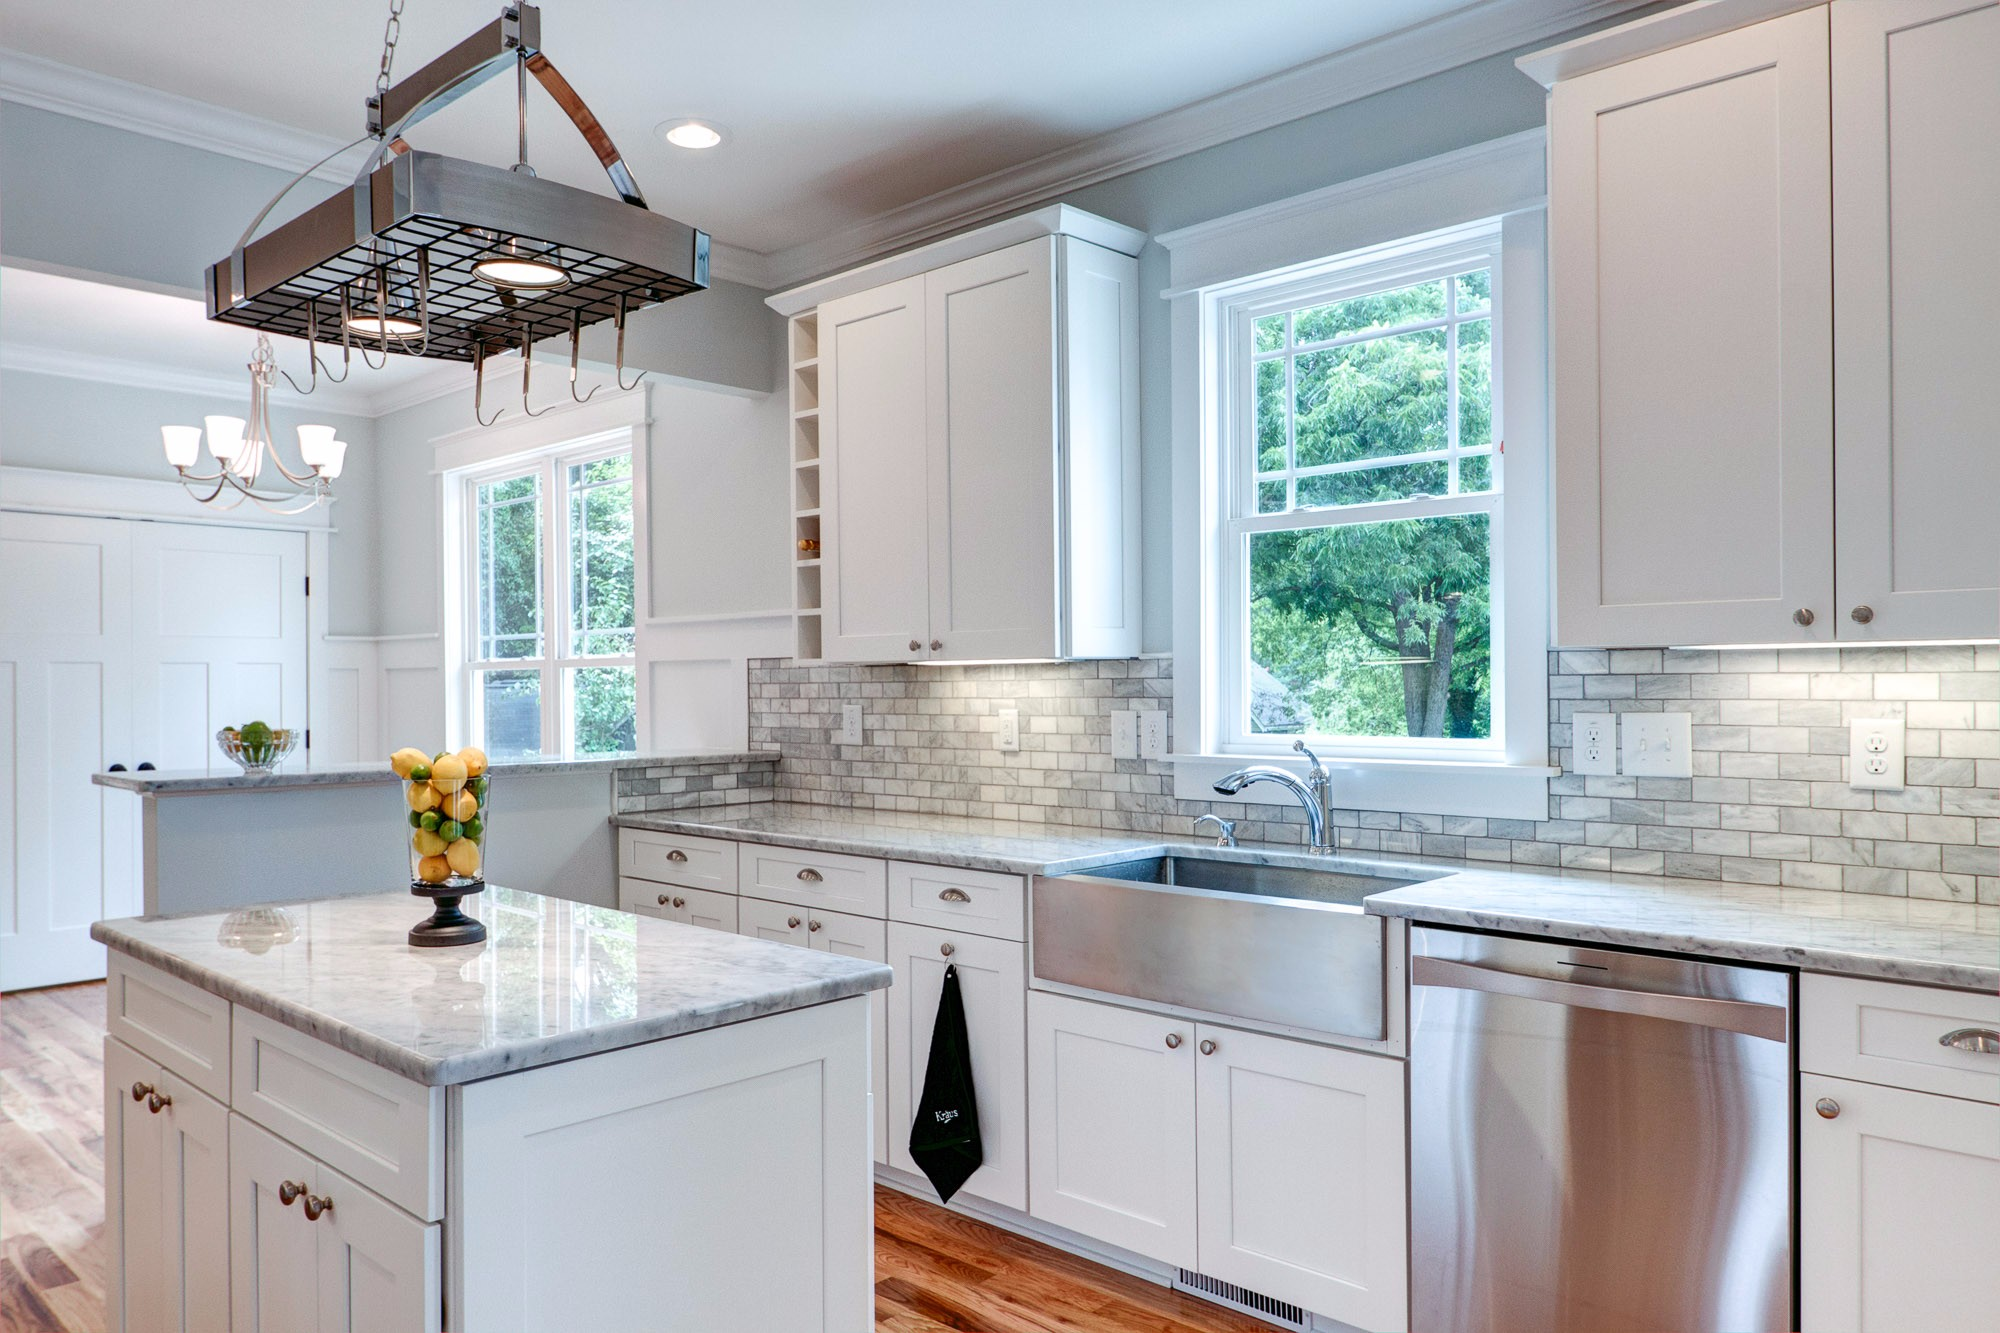 New Construction Home with White Marble and Stainless Steel Kitchen in Durham NC